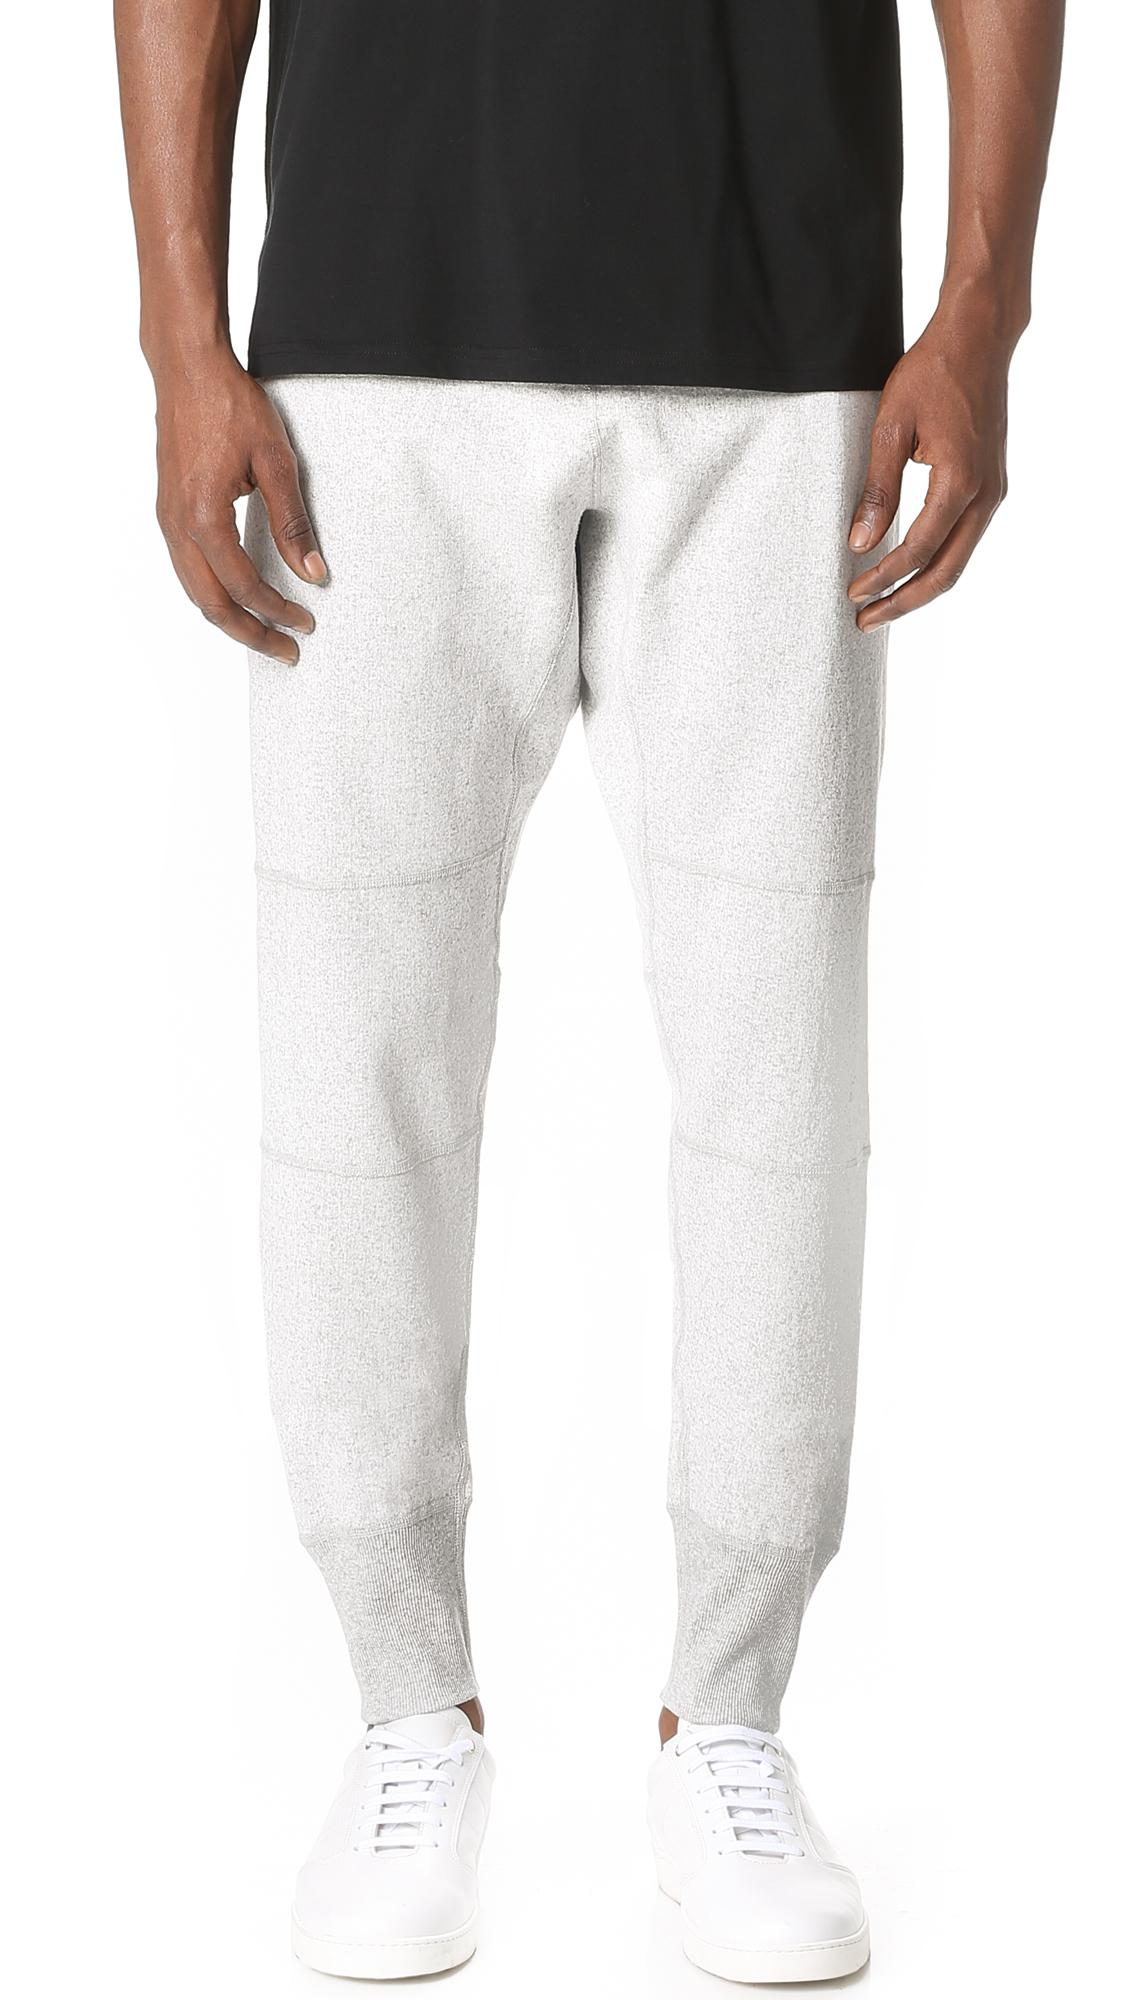 679d66204701 Lyst - Reigning Champ Heavyweight Terry Sweatpants for Men